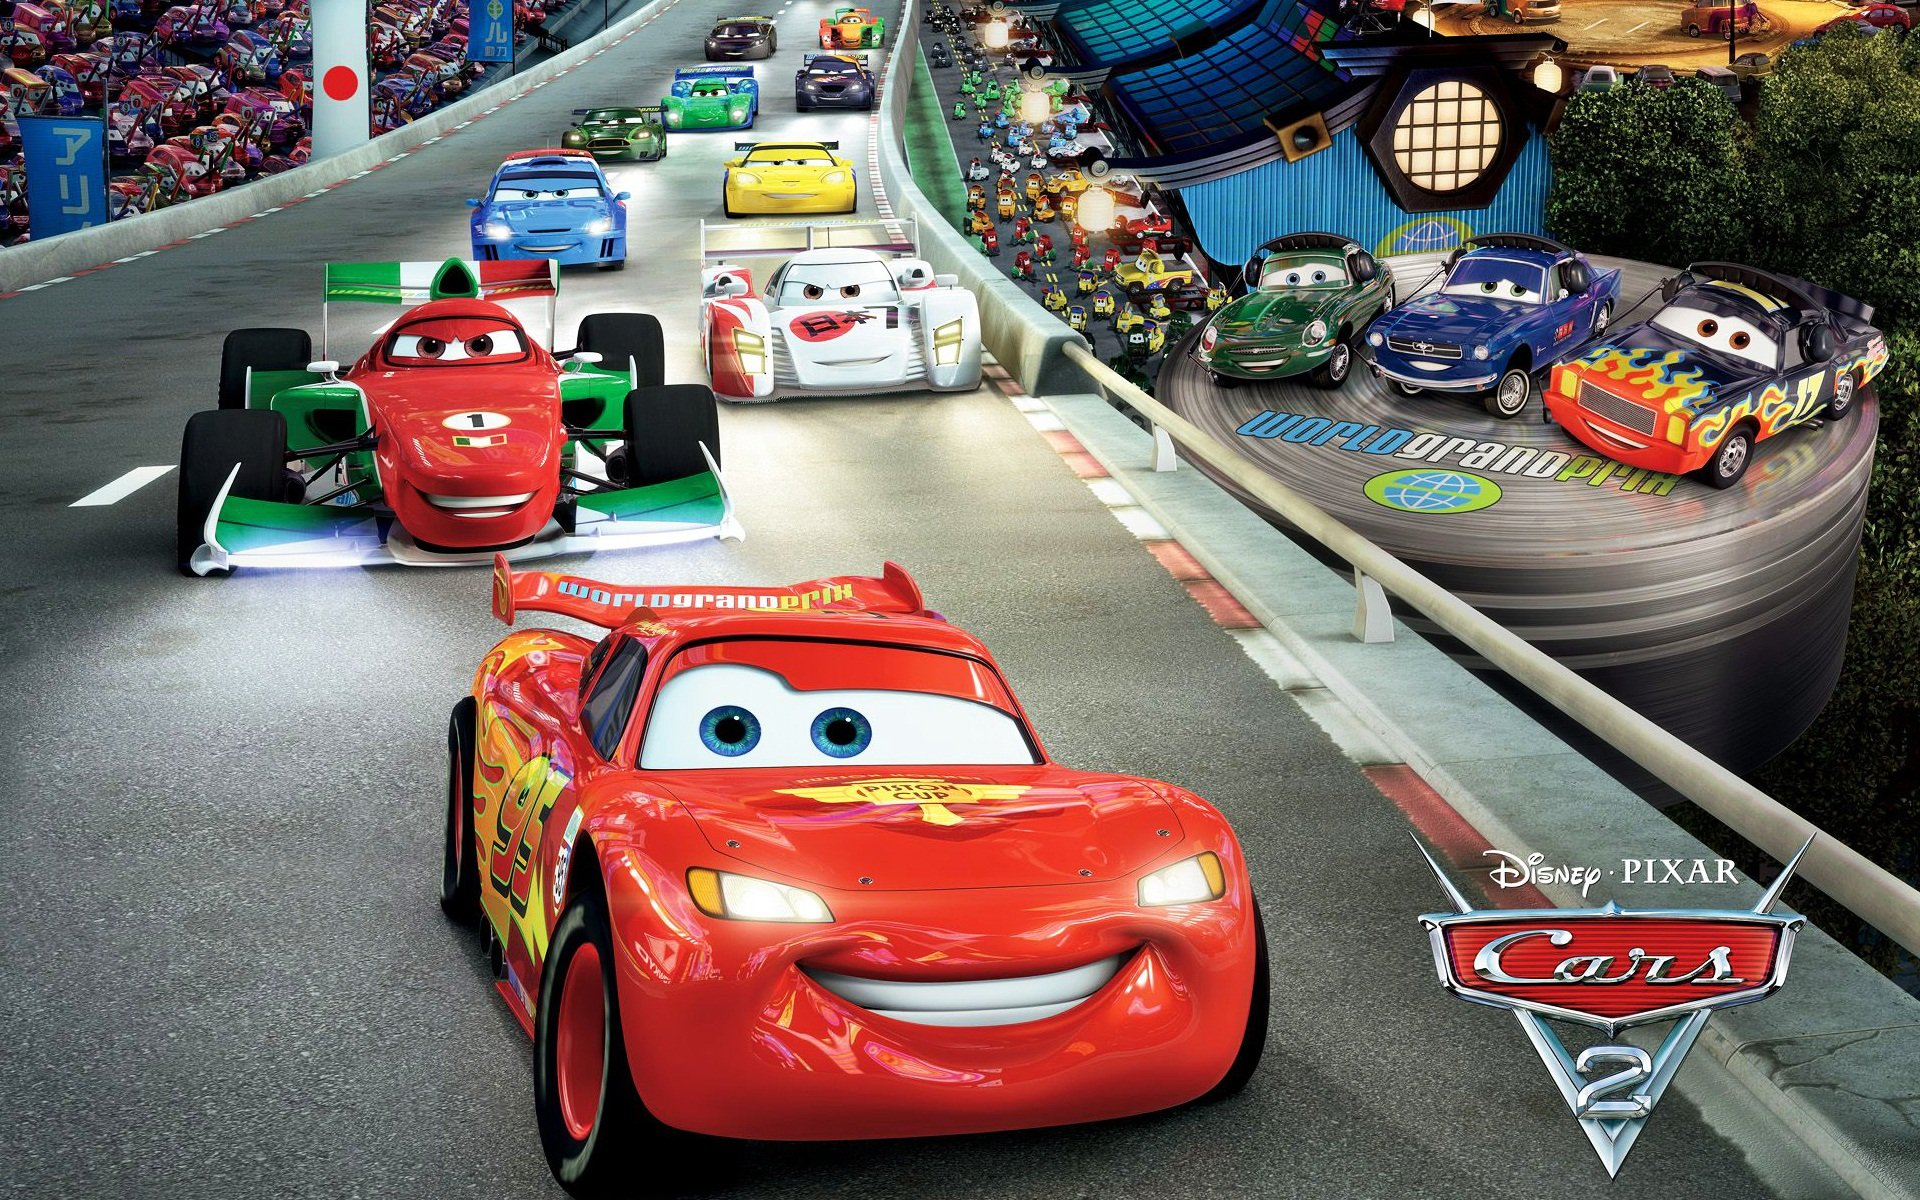 Disney Pixar Cars 2 images Cars 2 HD wallpaper and background photos 1920x1200